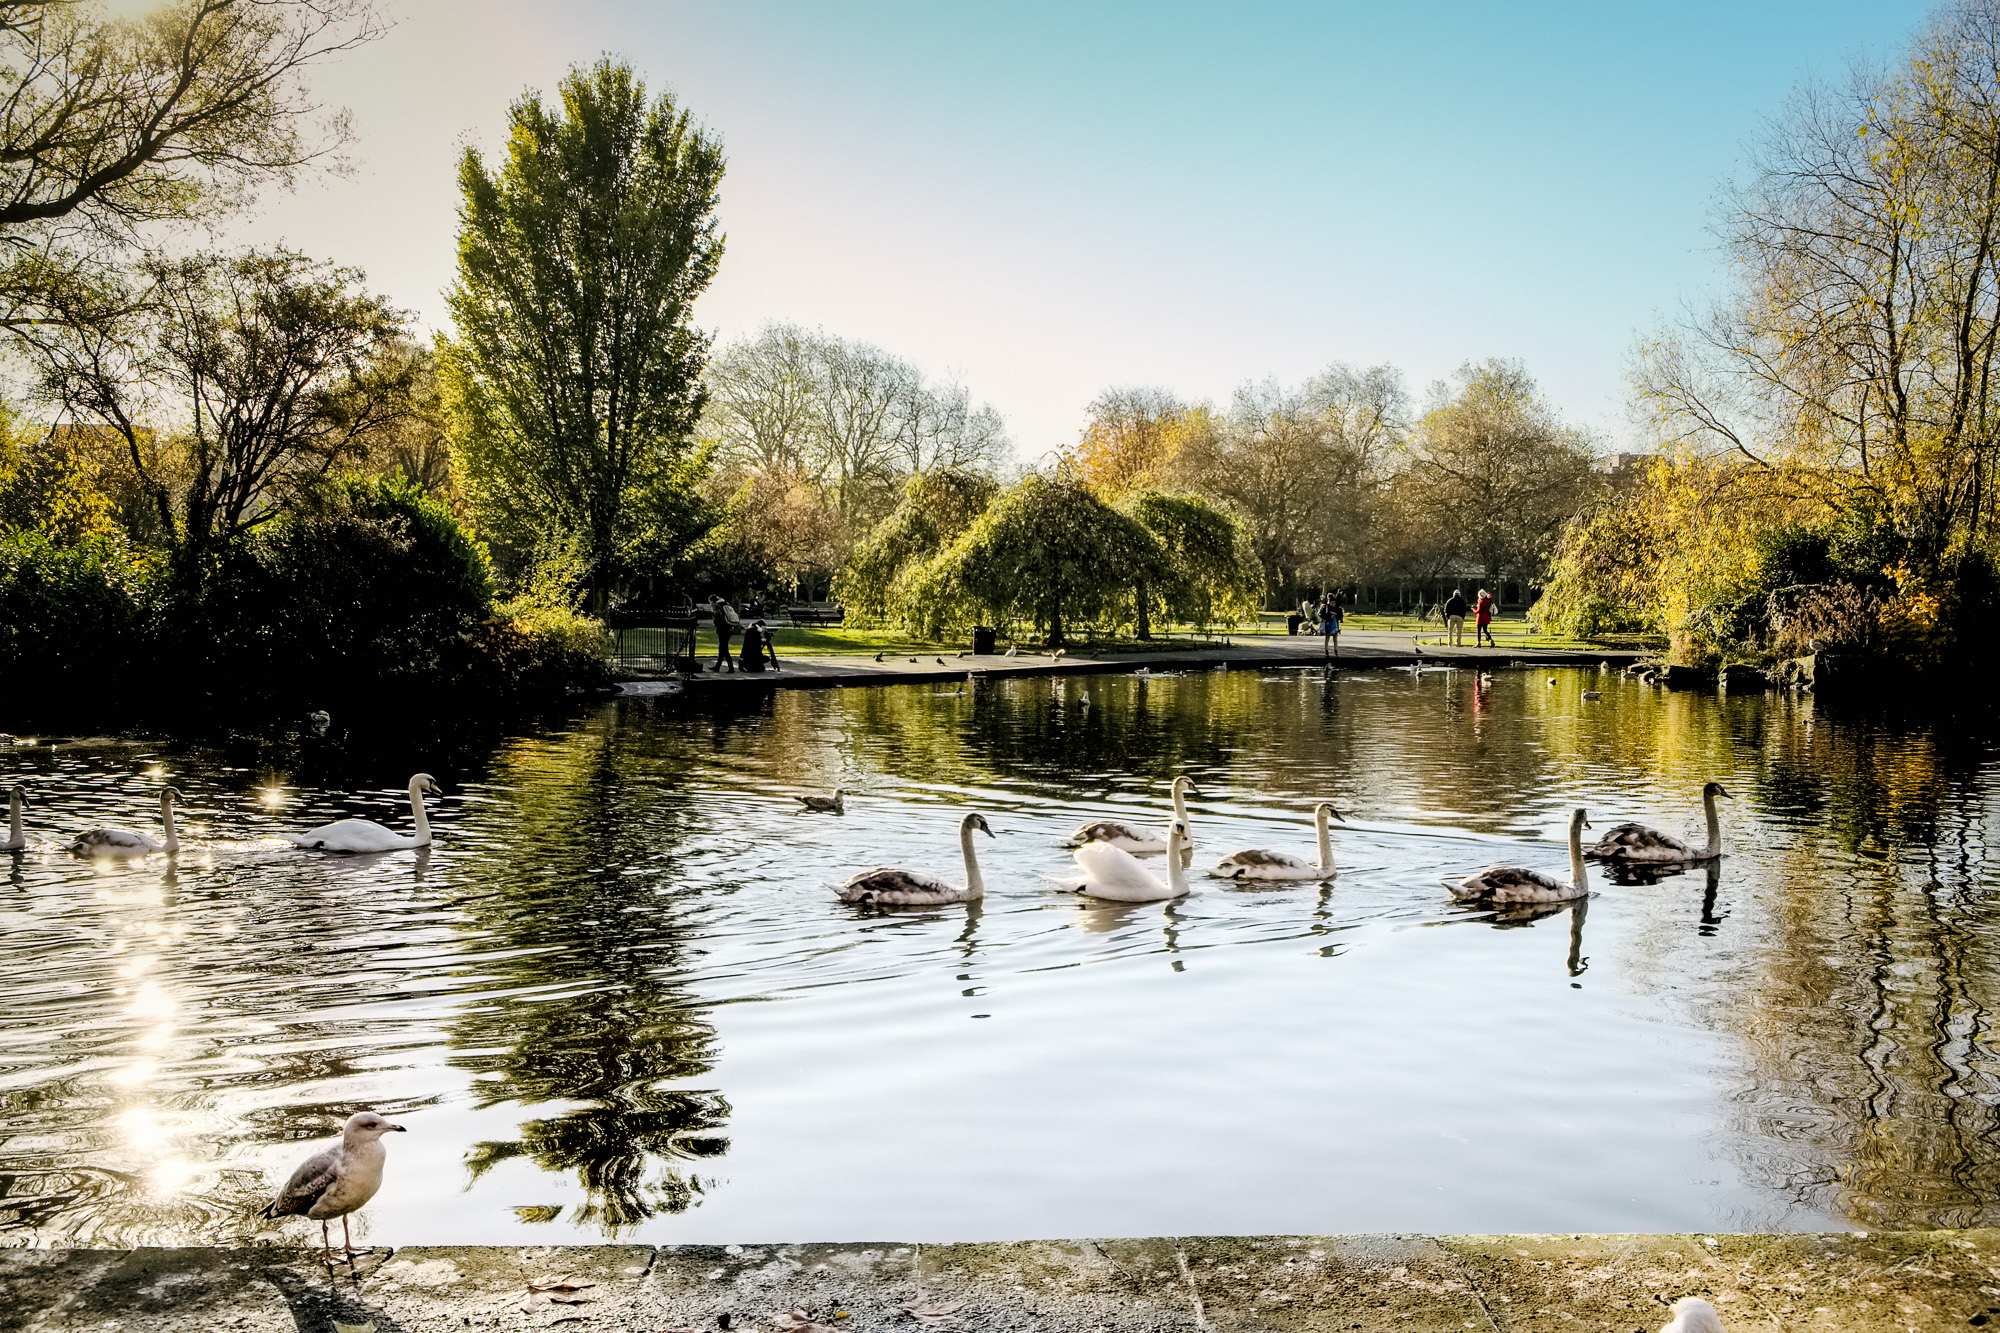 Swans on the Lake - Taken with a Fuji XE1